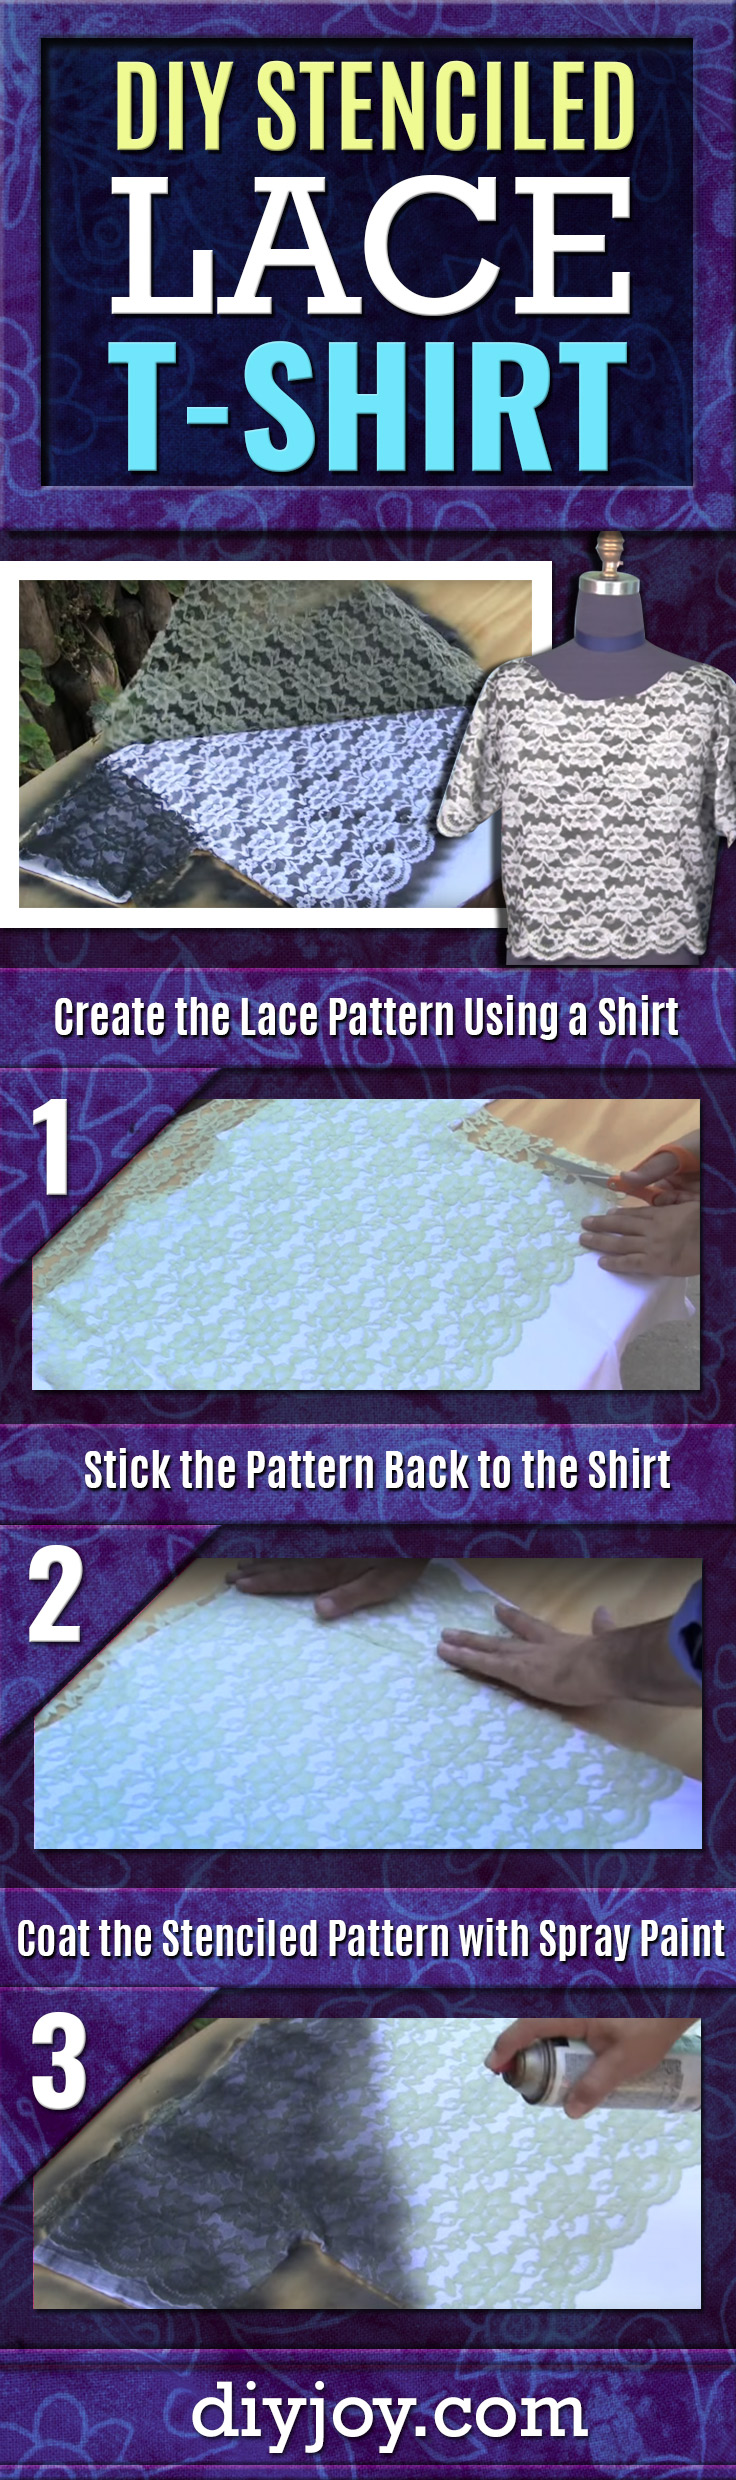 DIY Stenciled T-Shirt With Lace - Cool DIY Fashion Tutorials for Women, Teens and Girls - Cool Crafts and DIY Projects by DIY JOY